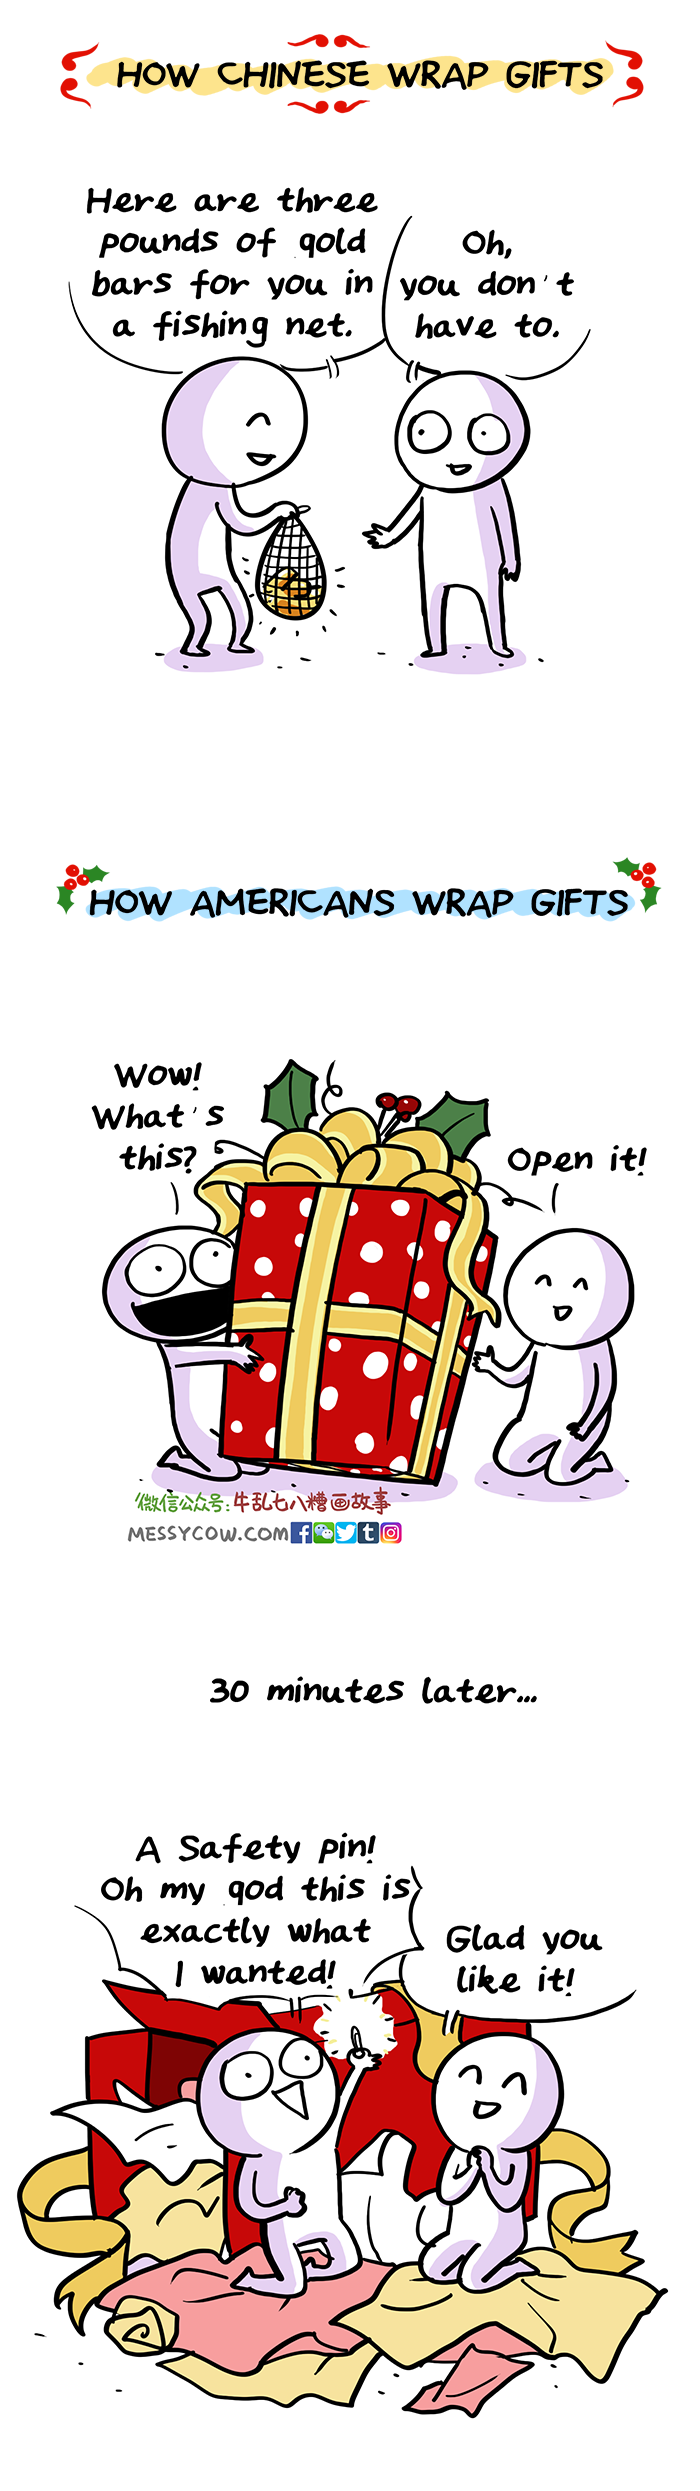 wrapgifts